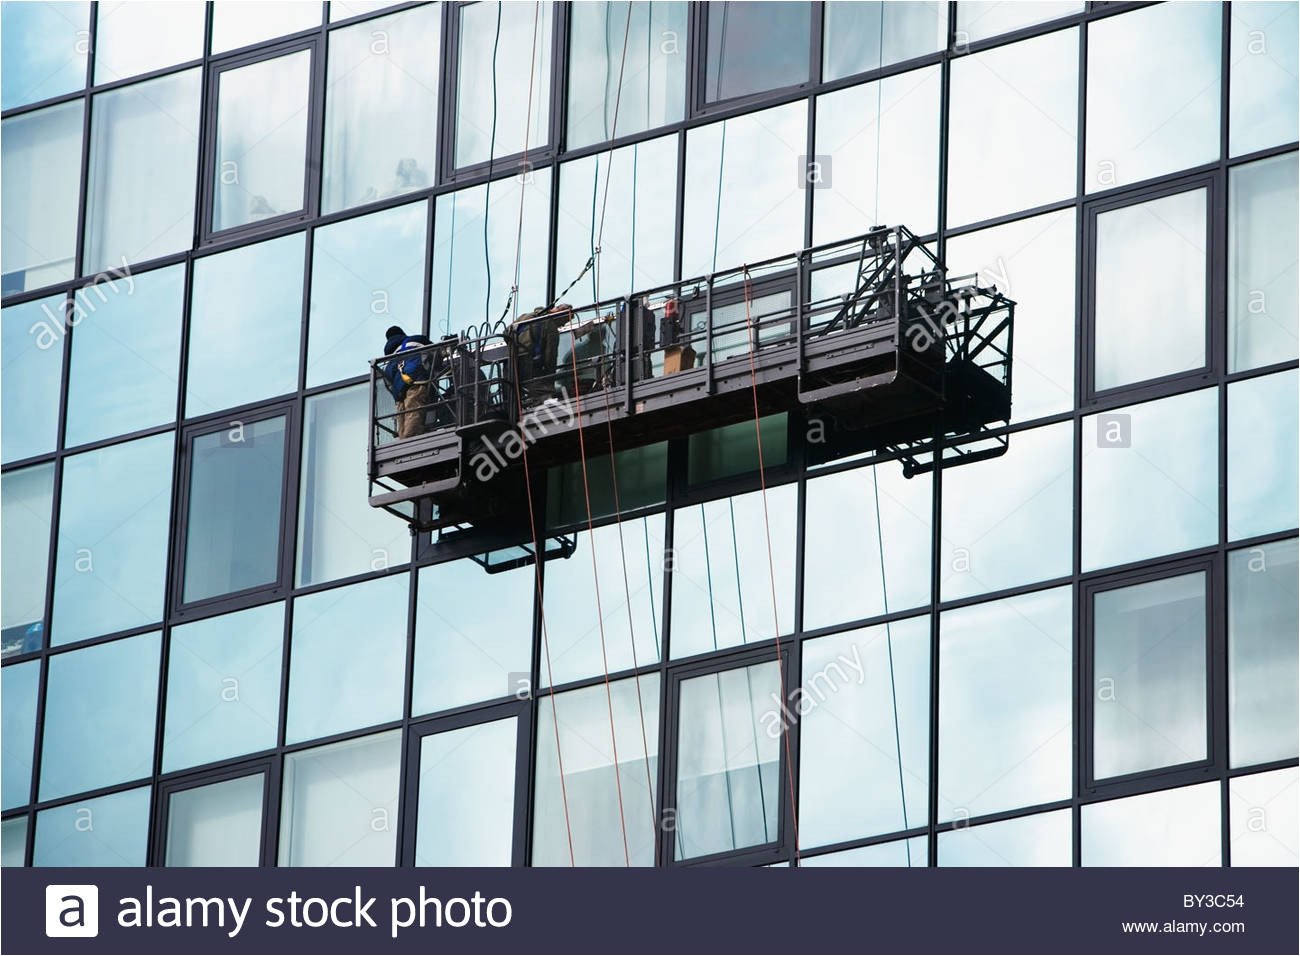 usa new york city manhattan window cleaning platform on building stock image